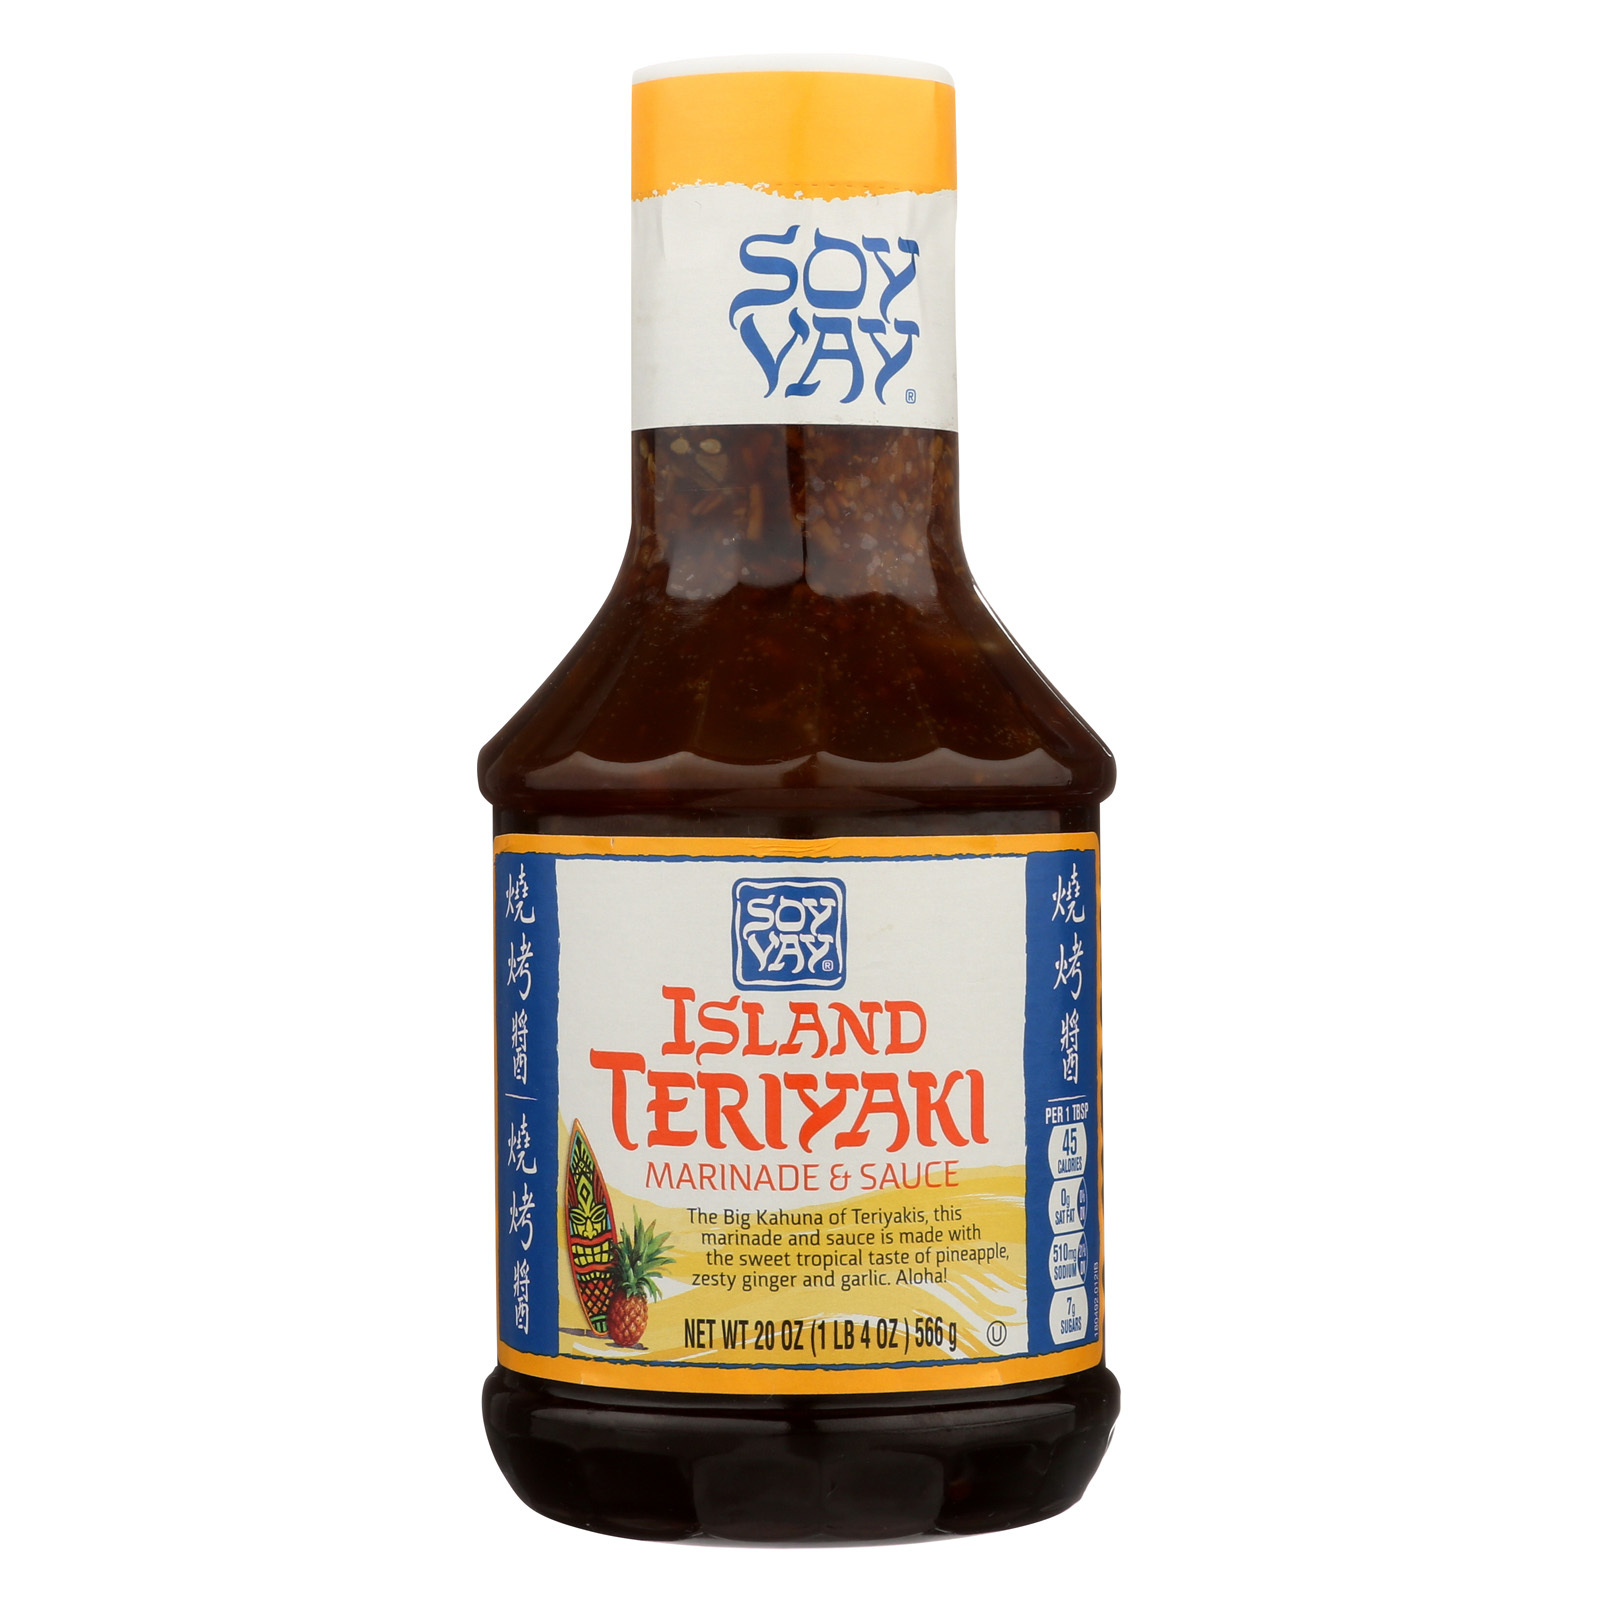 Soy Vay Island Triyaki - Marinade and Sauce - Case of 6 - 20 Fl oz.